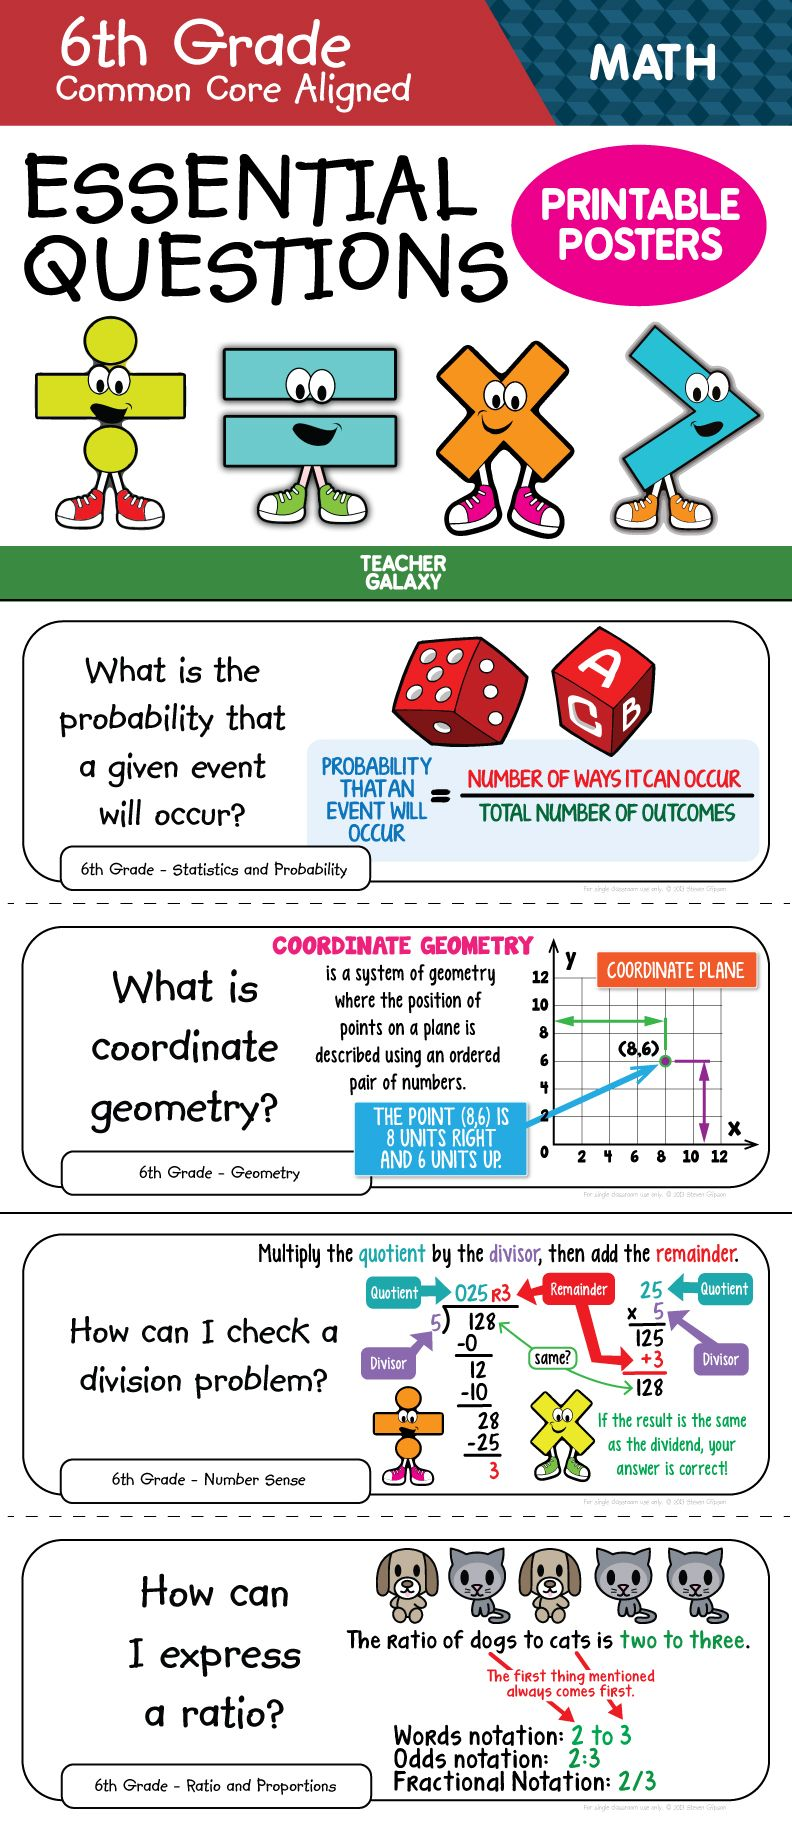 Essential Questions for 6th Grade Math | Wall spaces, Common cores ...